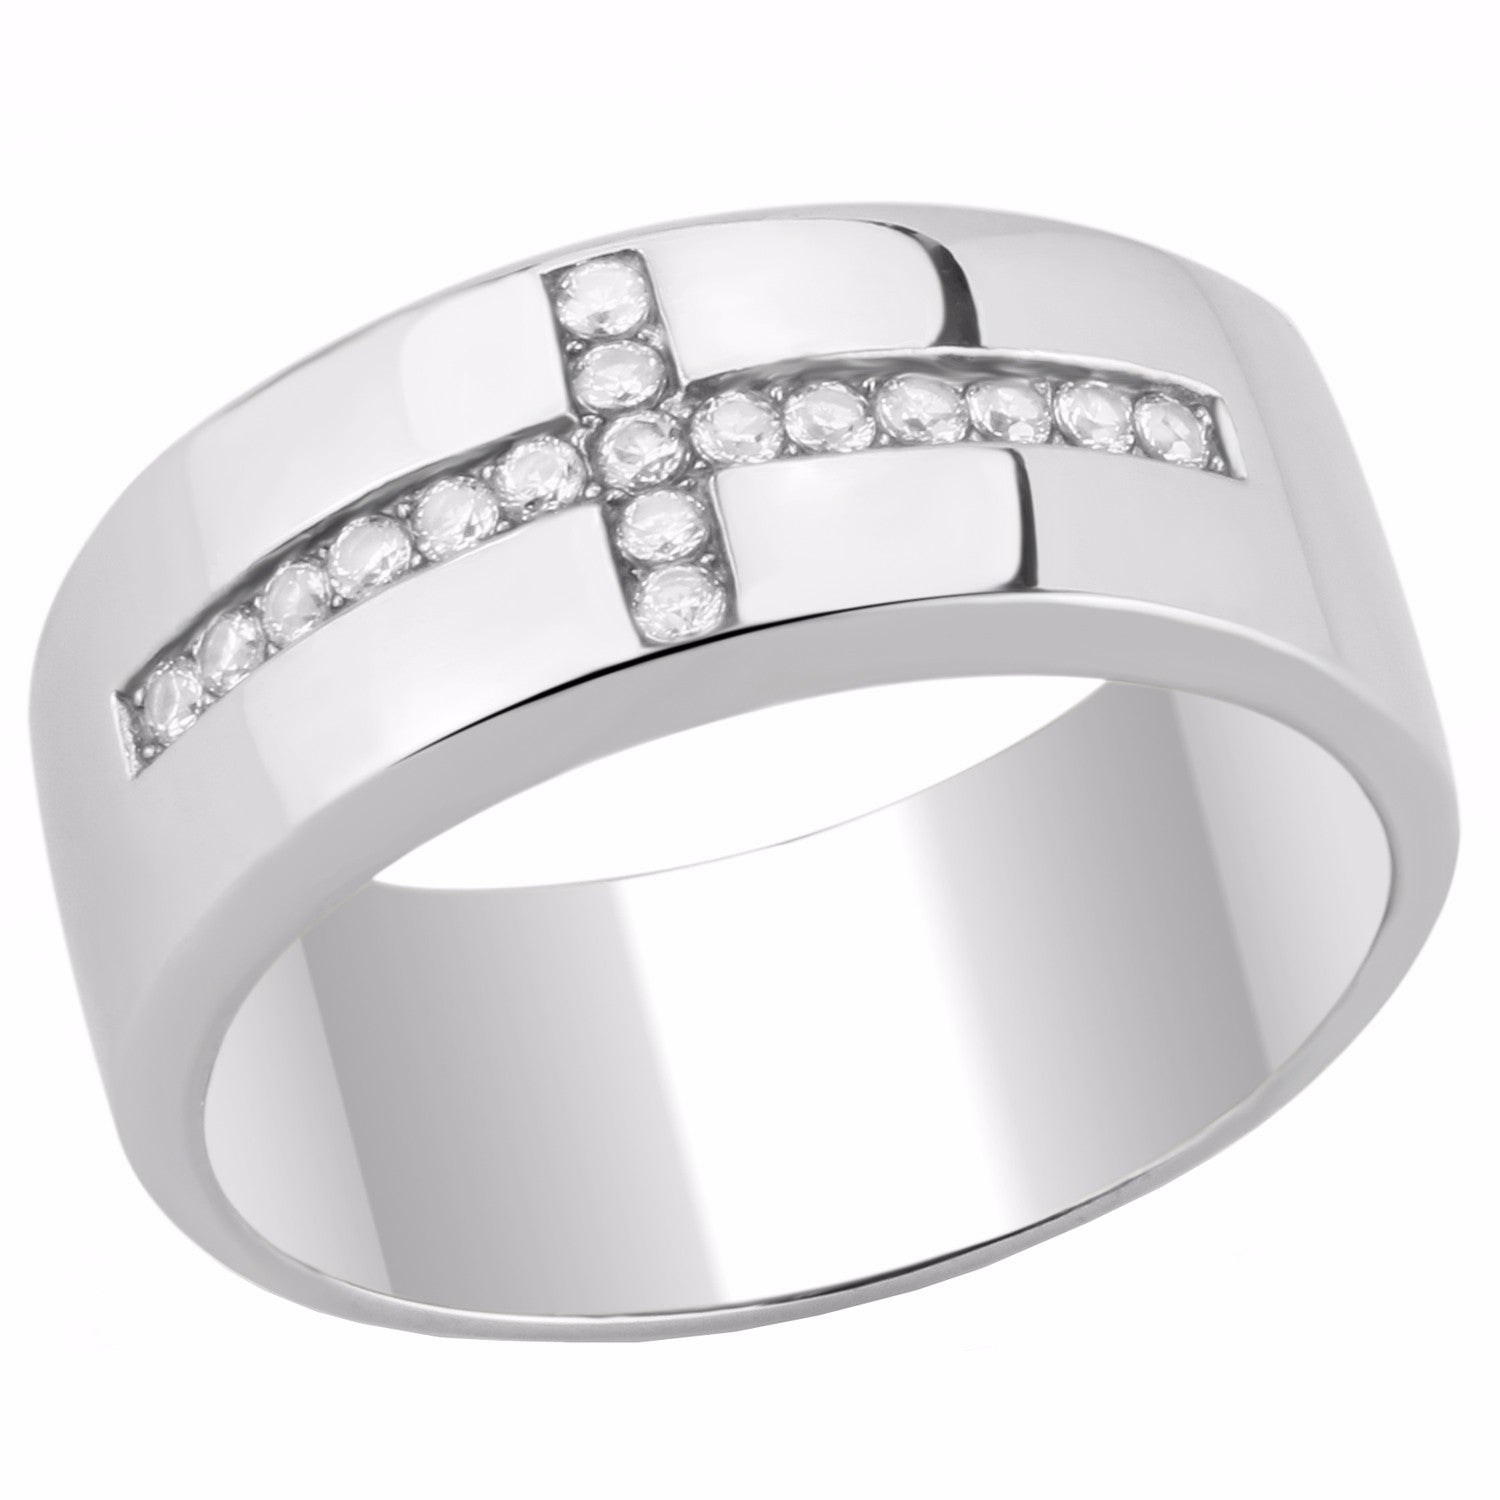 Round Clear CZ Set on Cross 316 Stainless Steel Mens Ring - LA NY Jewelry